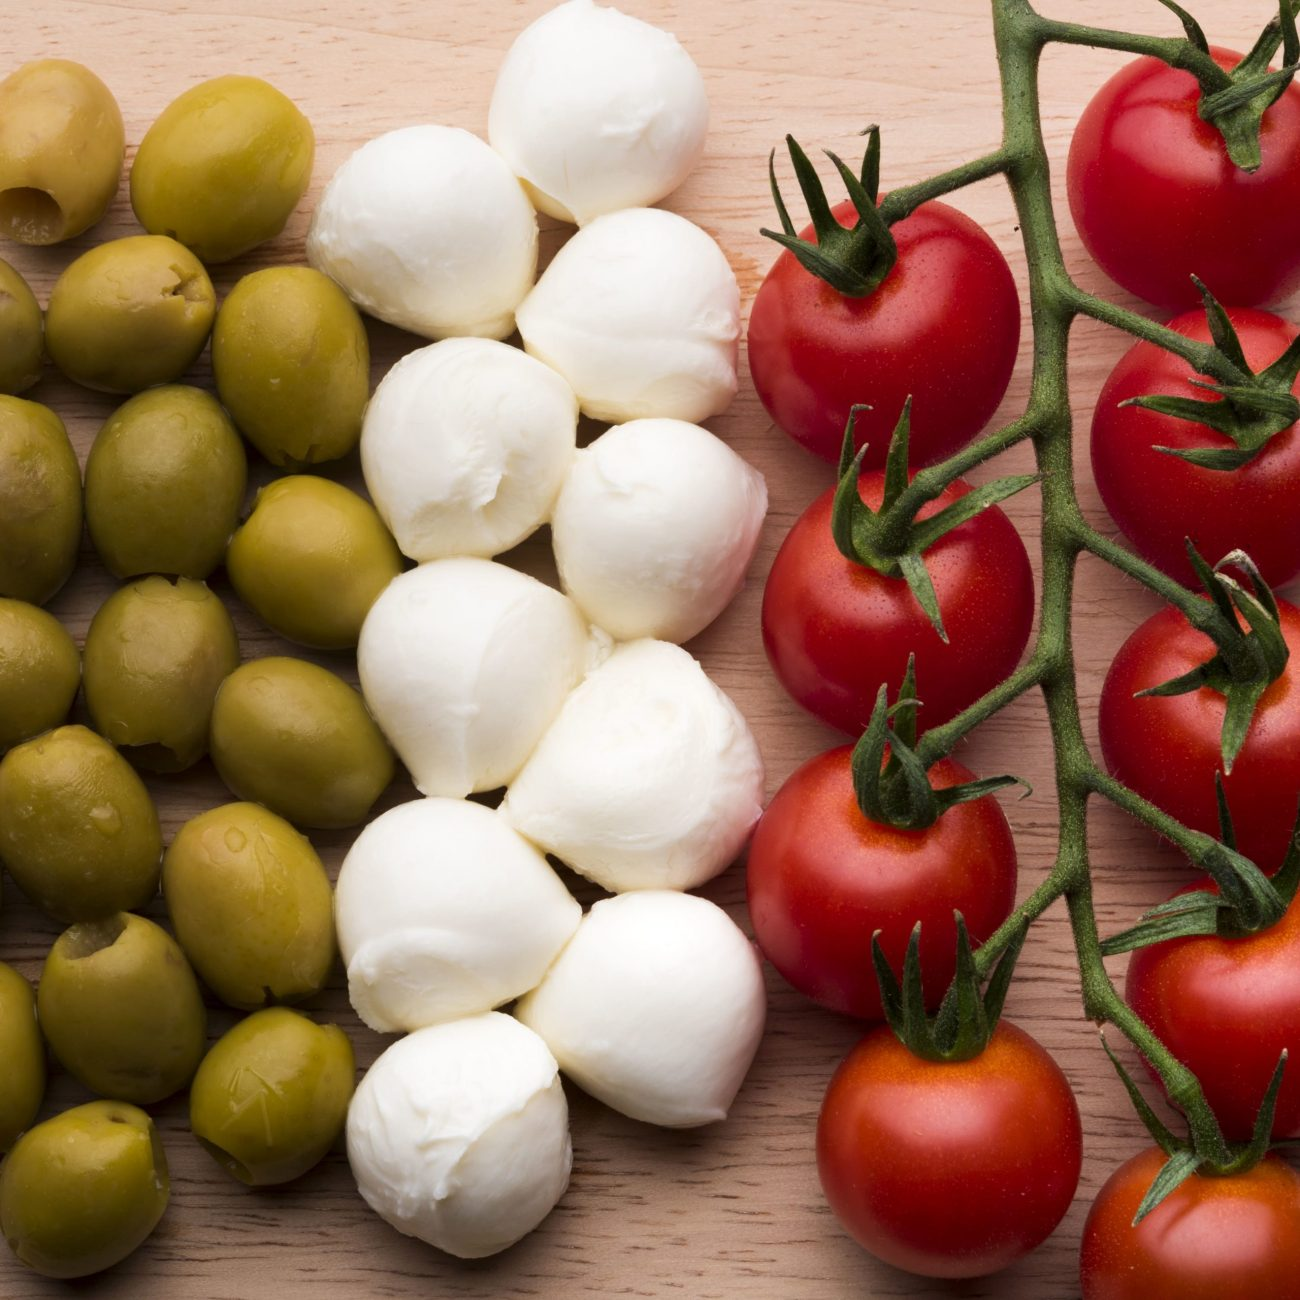 delicious-mozzarella-cheese-fresh-red-tomatoes-wet-olives-wooden-table